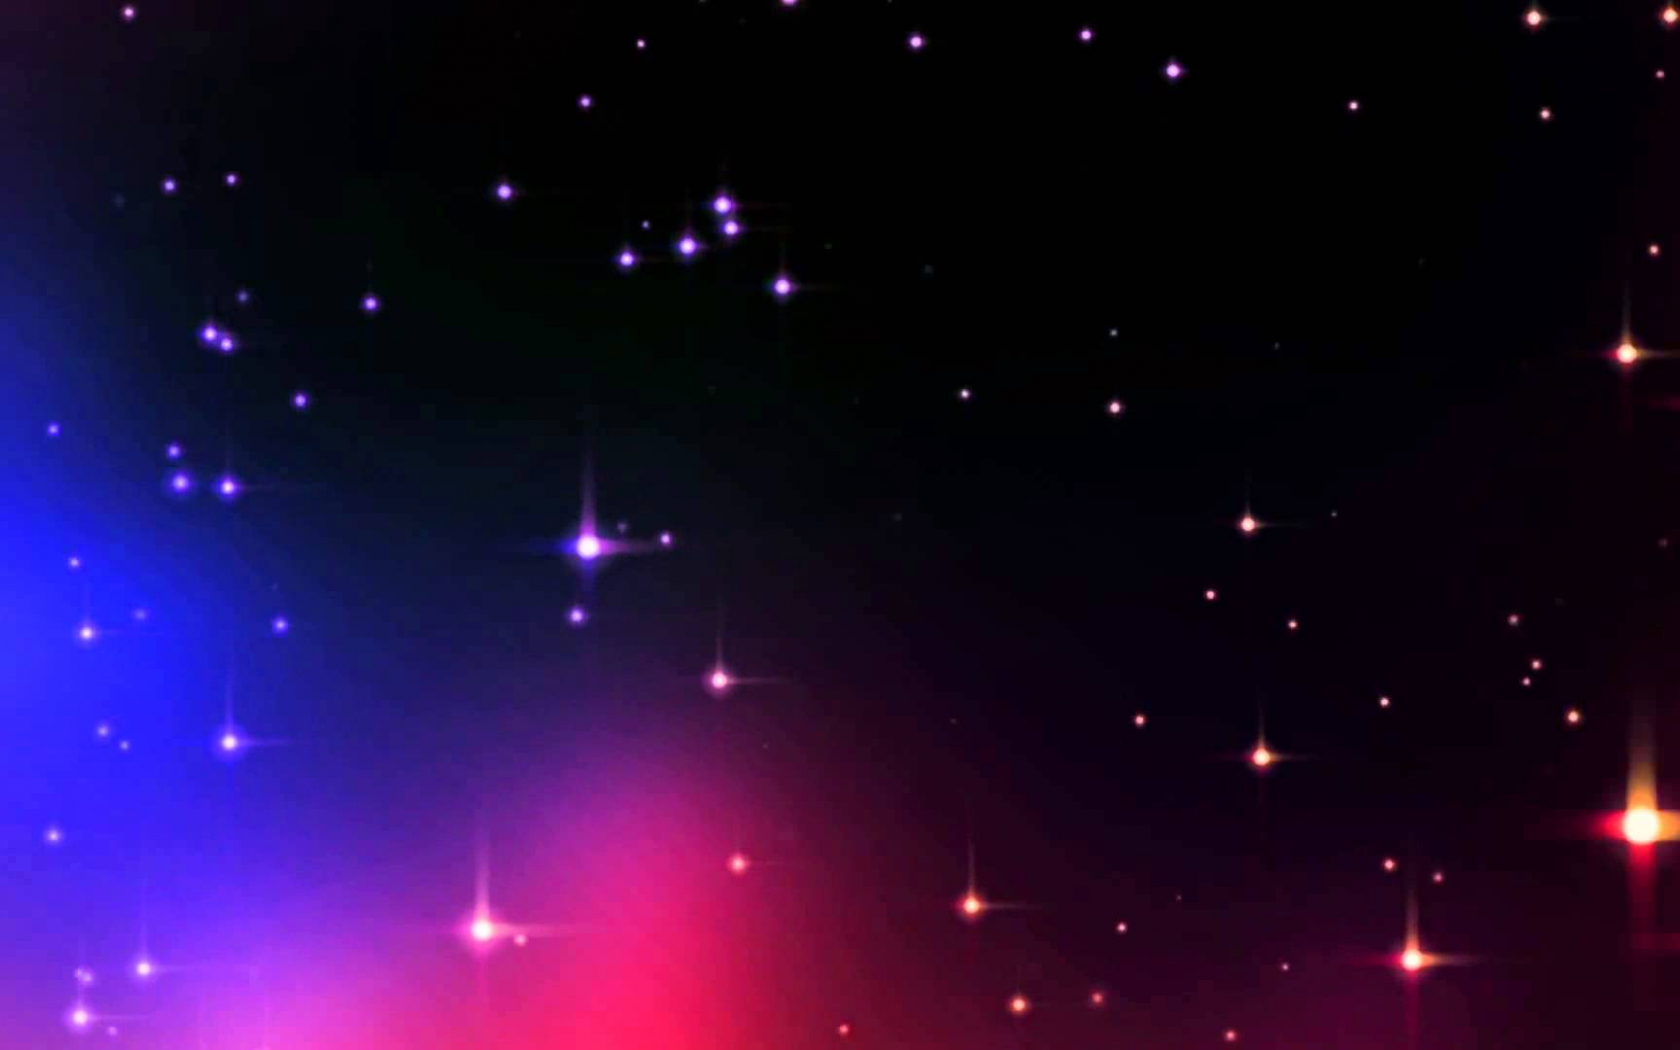 Free Download Dancing Stars Background Loop 1920x1080 For Your